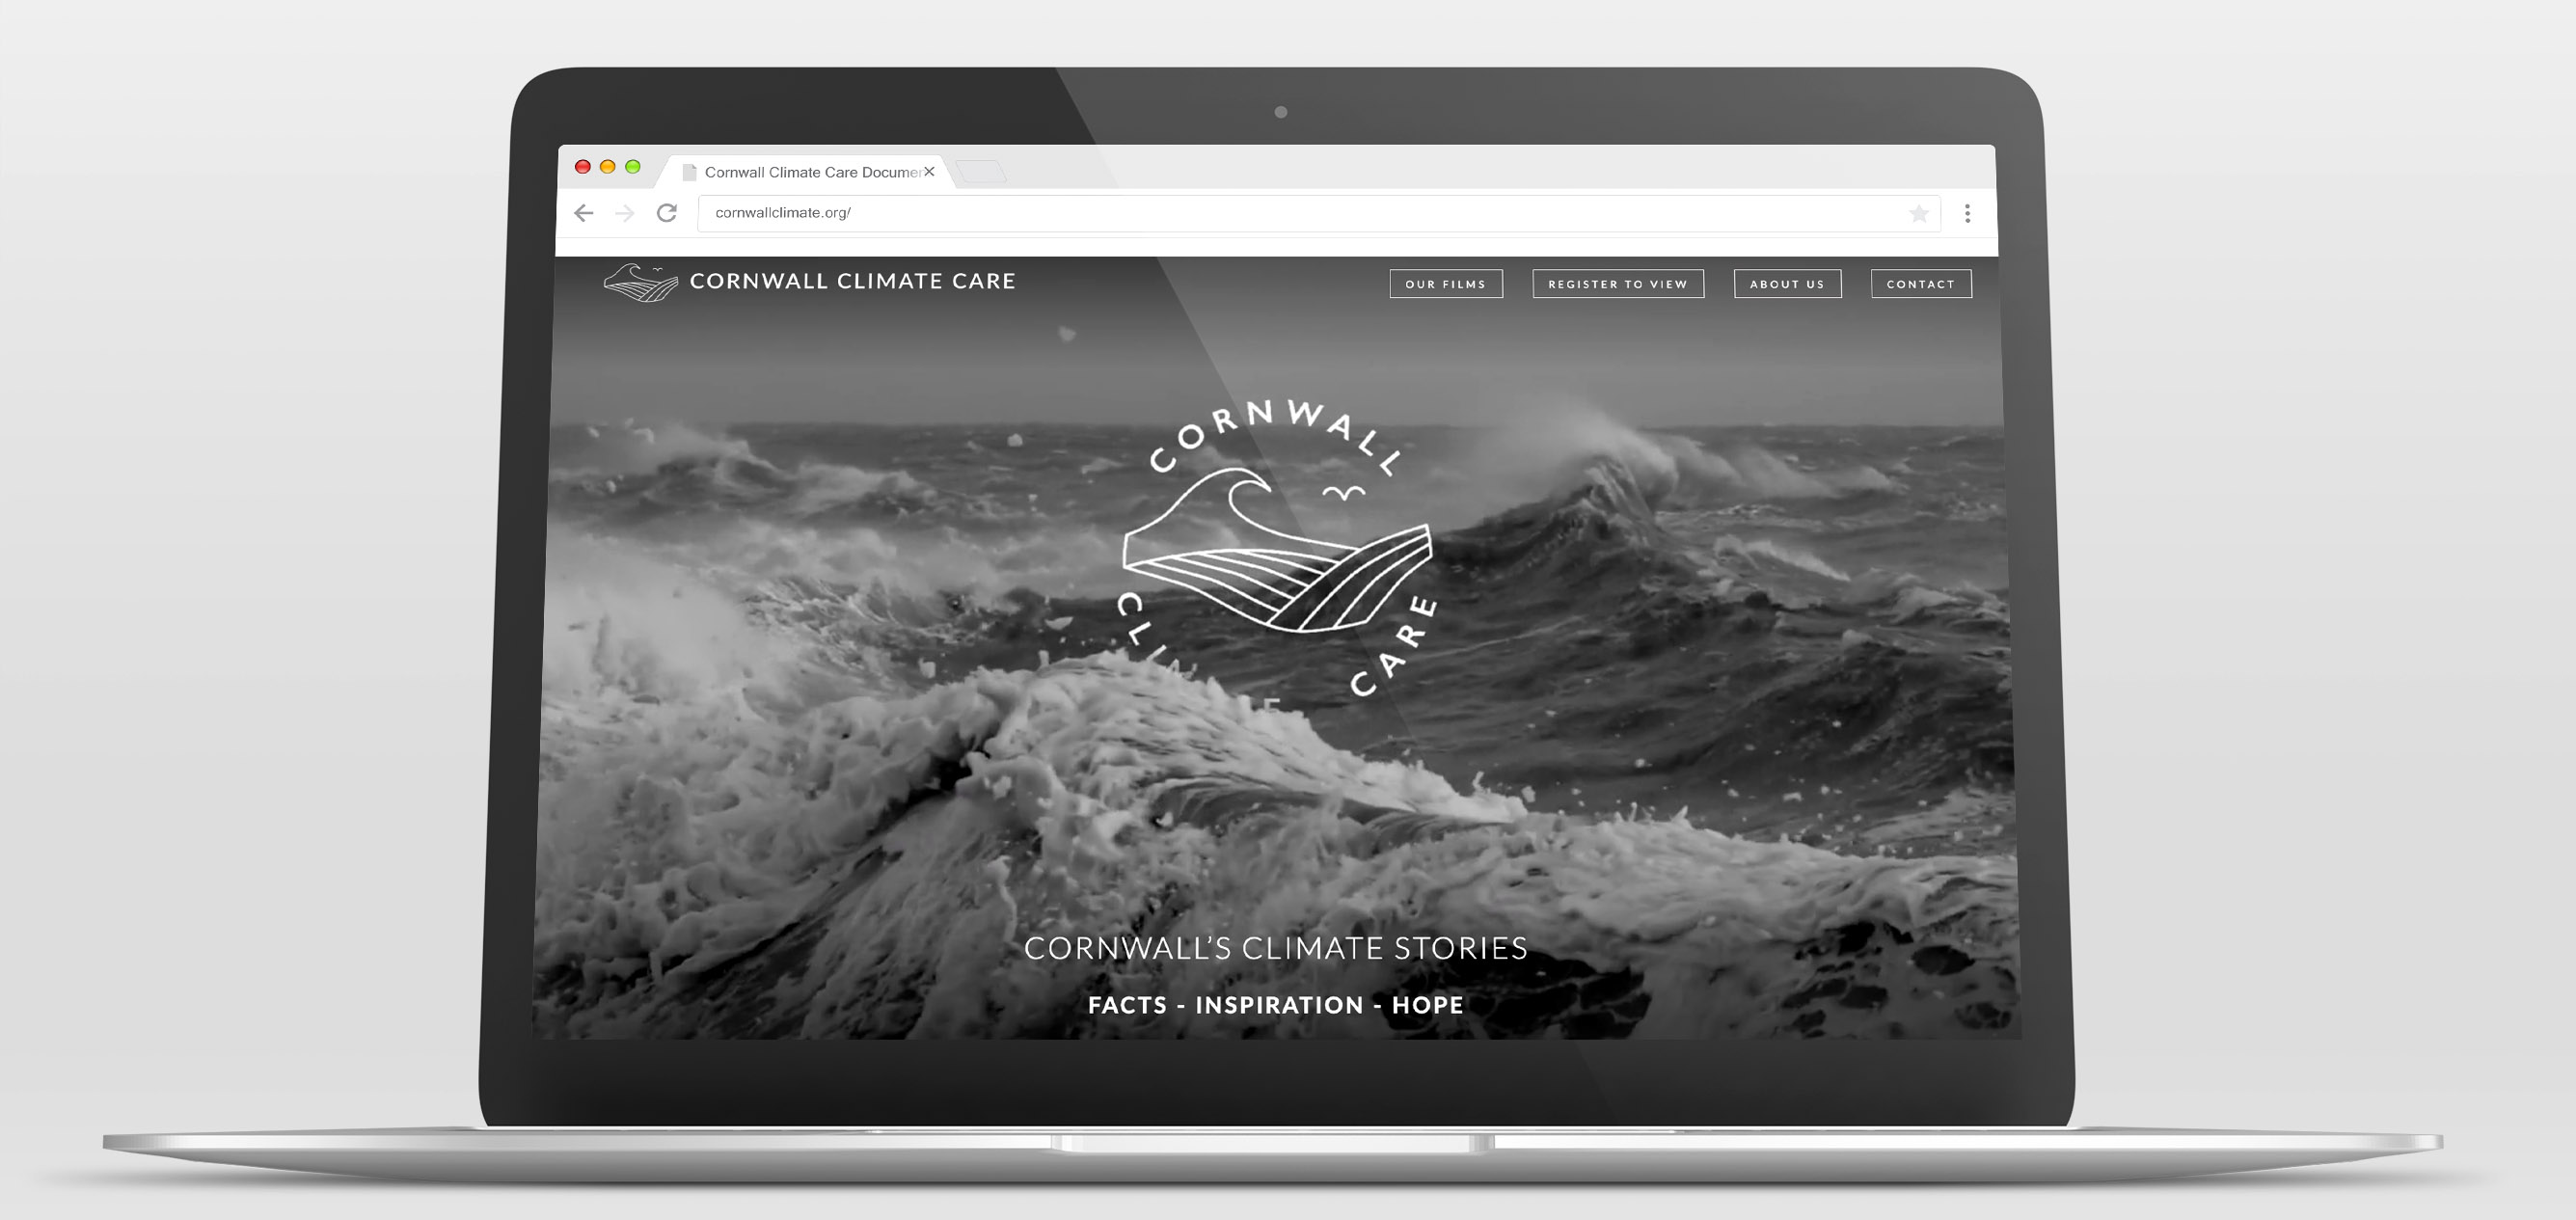 Cornwall Climate Care website on various Apple laptop